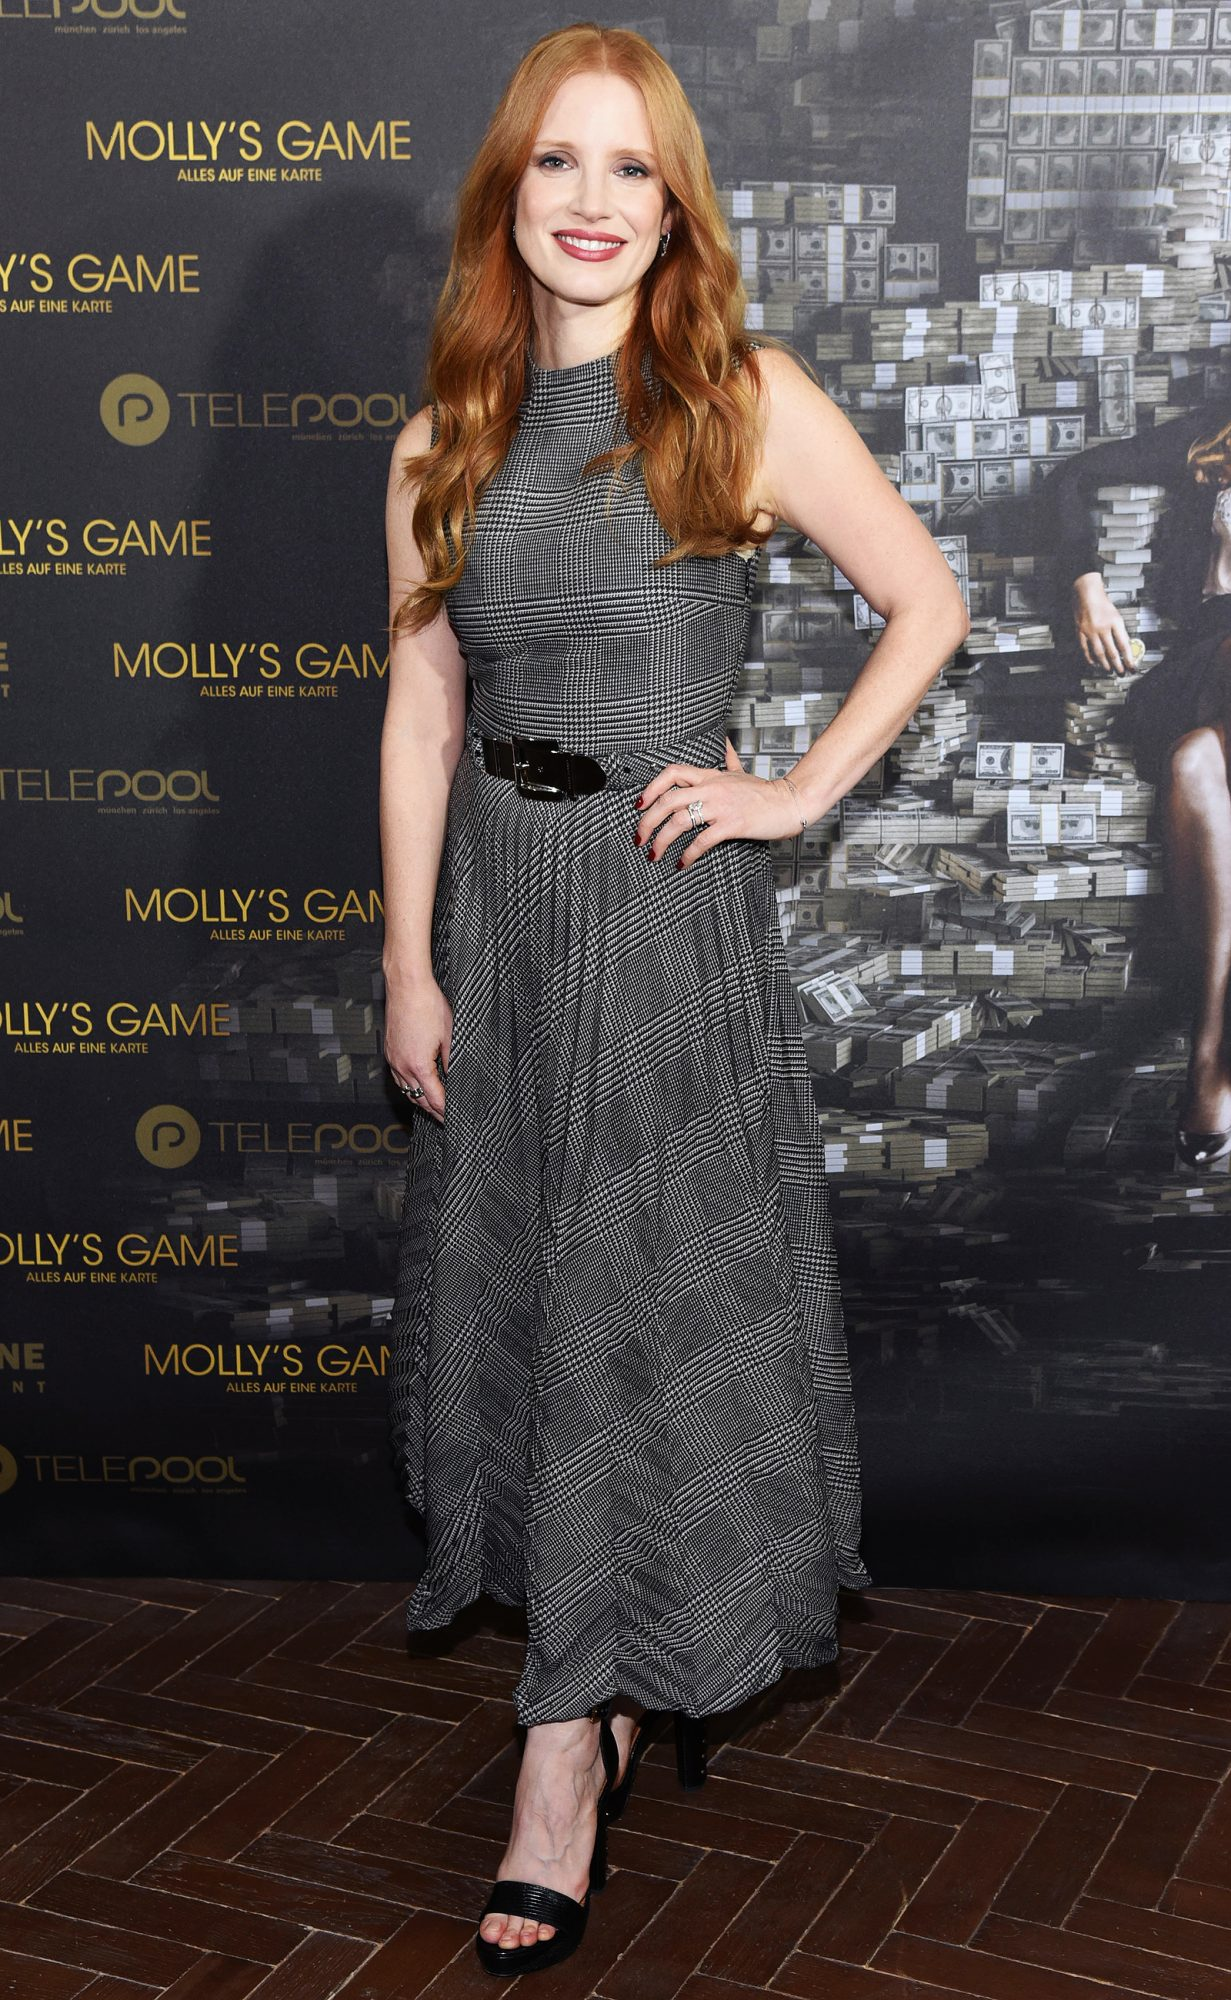 Aaron Sorkin and Jessica Chastain at the Mollys Game Photocall